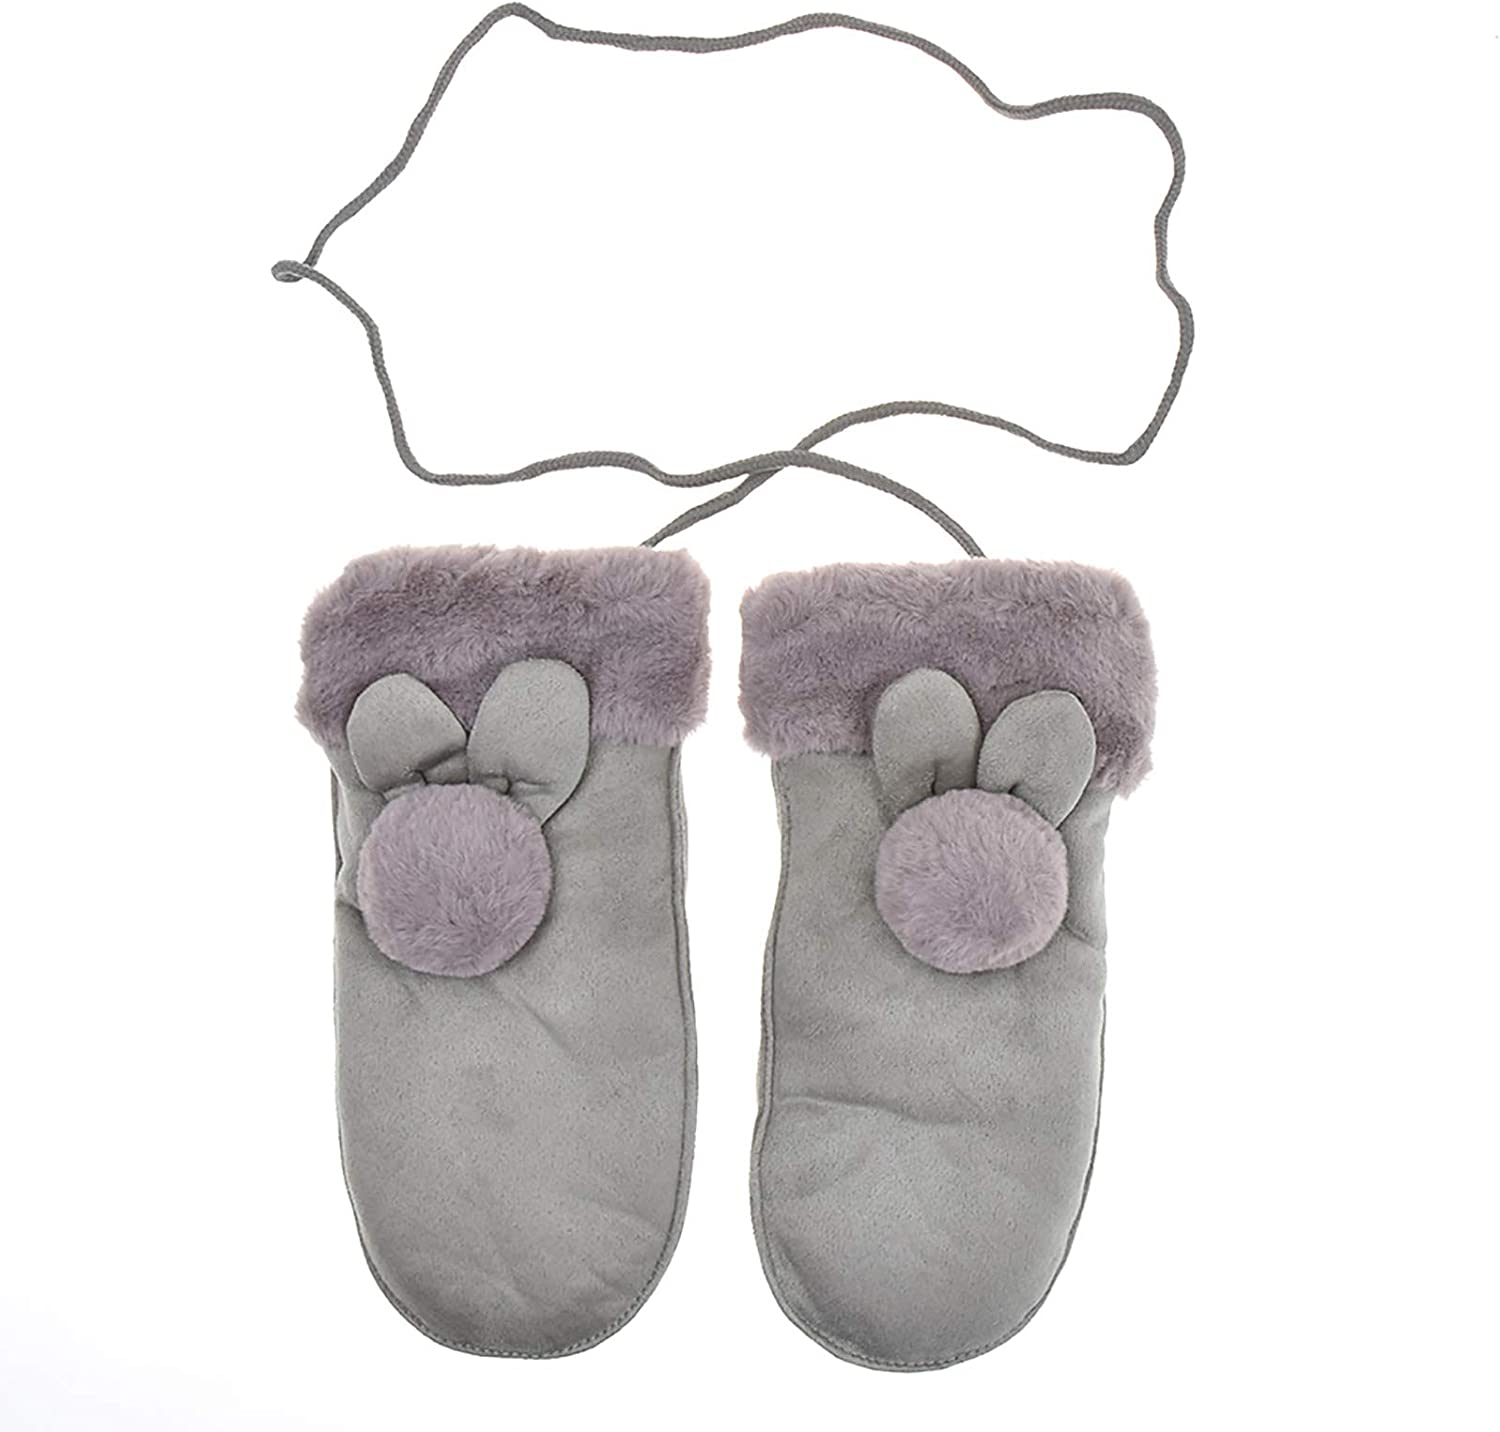 MISAZ Winter Mittens Kids sale Plush with Gloves Lining Warm String Cheap super special price